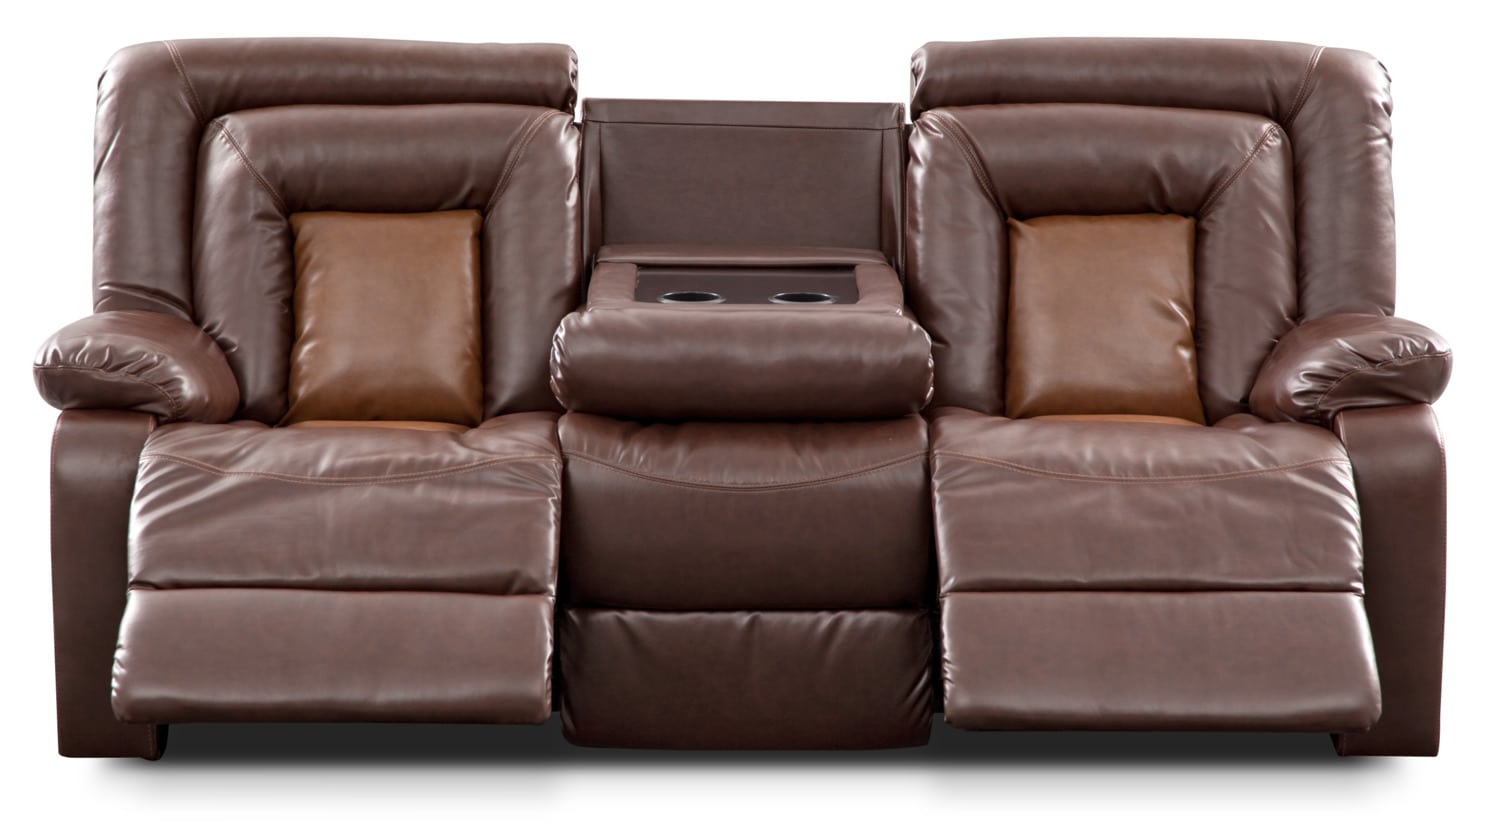 mustang dual reclining sofa with console brown american signature furniture. Black Bedroom Furniture Sets. Home Design Ideas